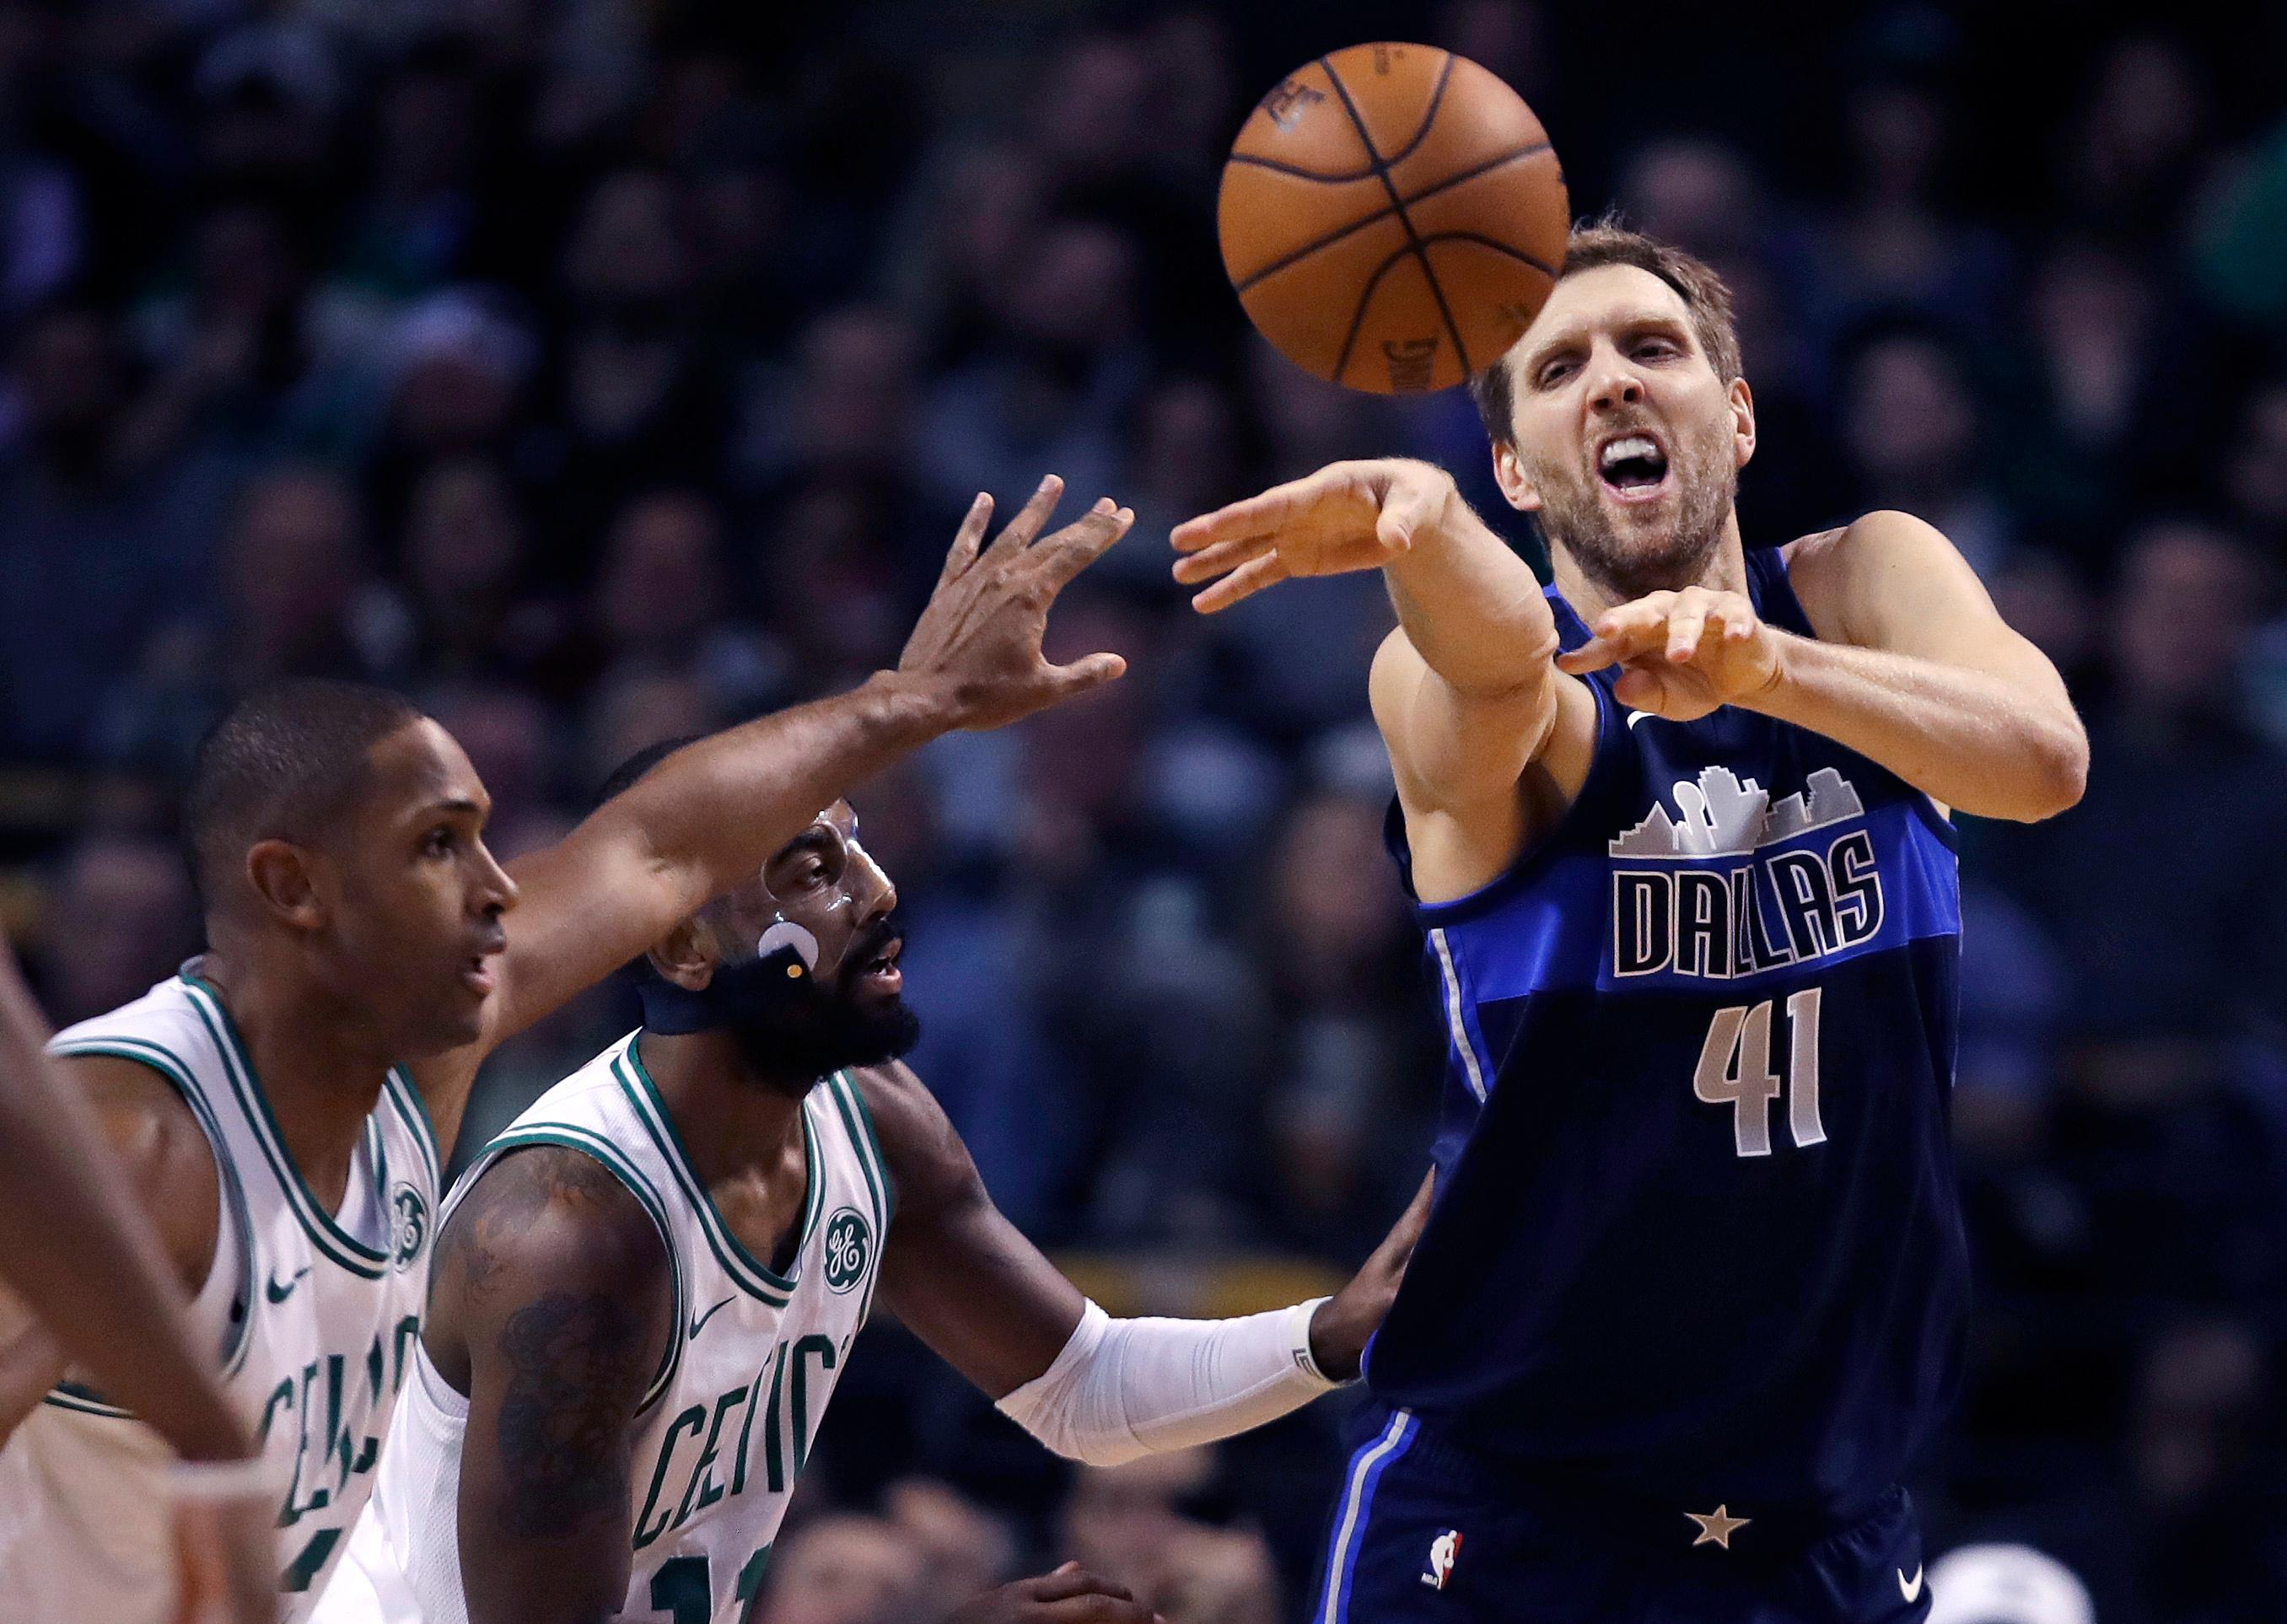 Dallas Mavericks forward Dirk Nowitzki (41) passes the ball while covered by Boston Celtics forward Al Horford, left, and guard Kyrie Irving during the first quarter of an NBA basketball game in Boston, Wednesday, Dec. 6, 2017. (AP Photo/Charles Krupa)